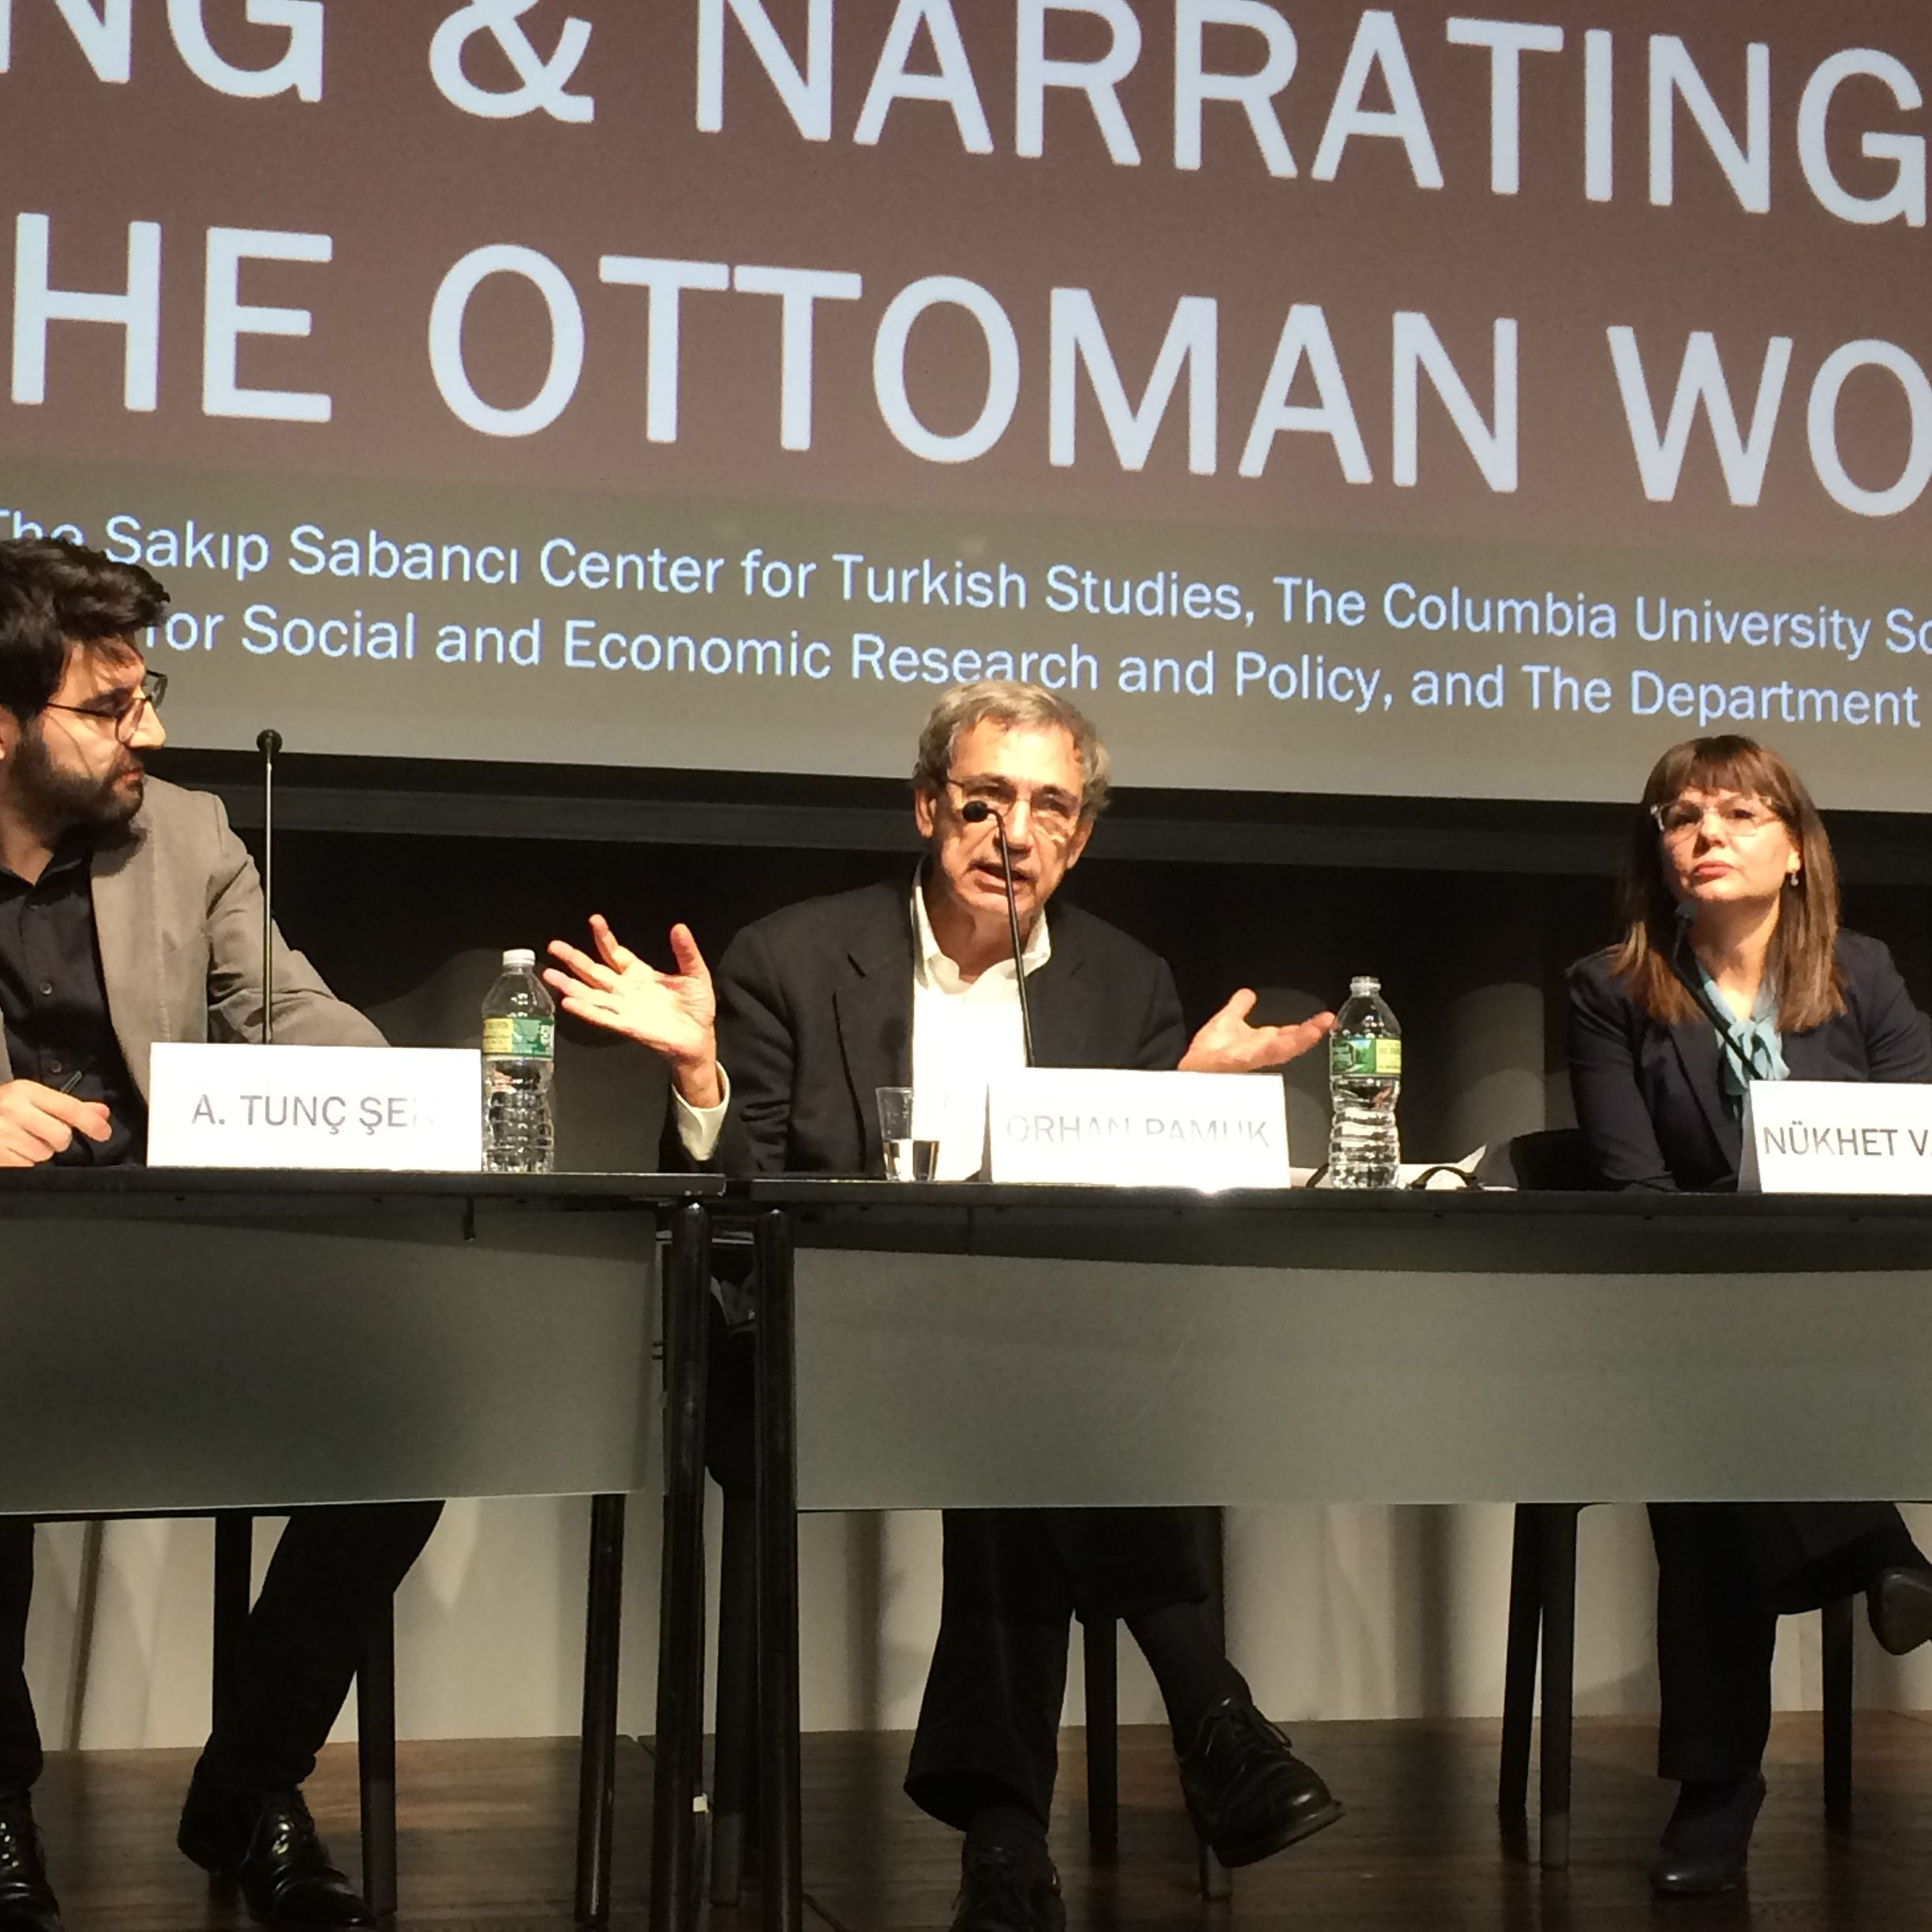 Imagining and Narrating Plague in the Ottoman World | Orhan